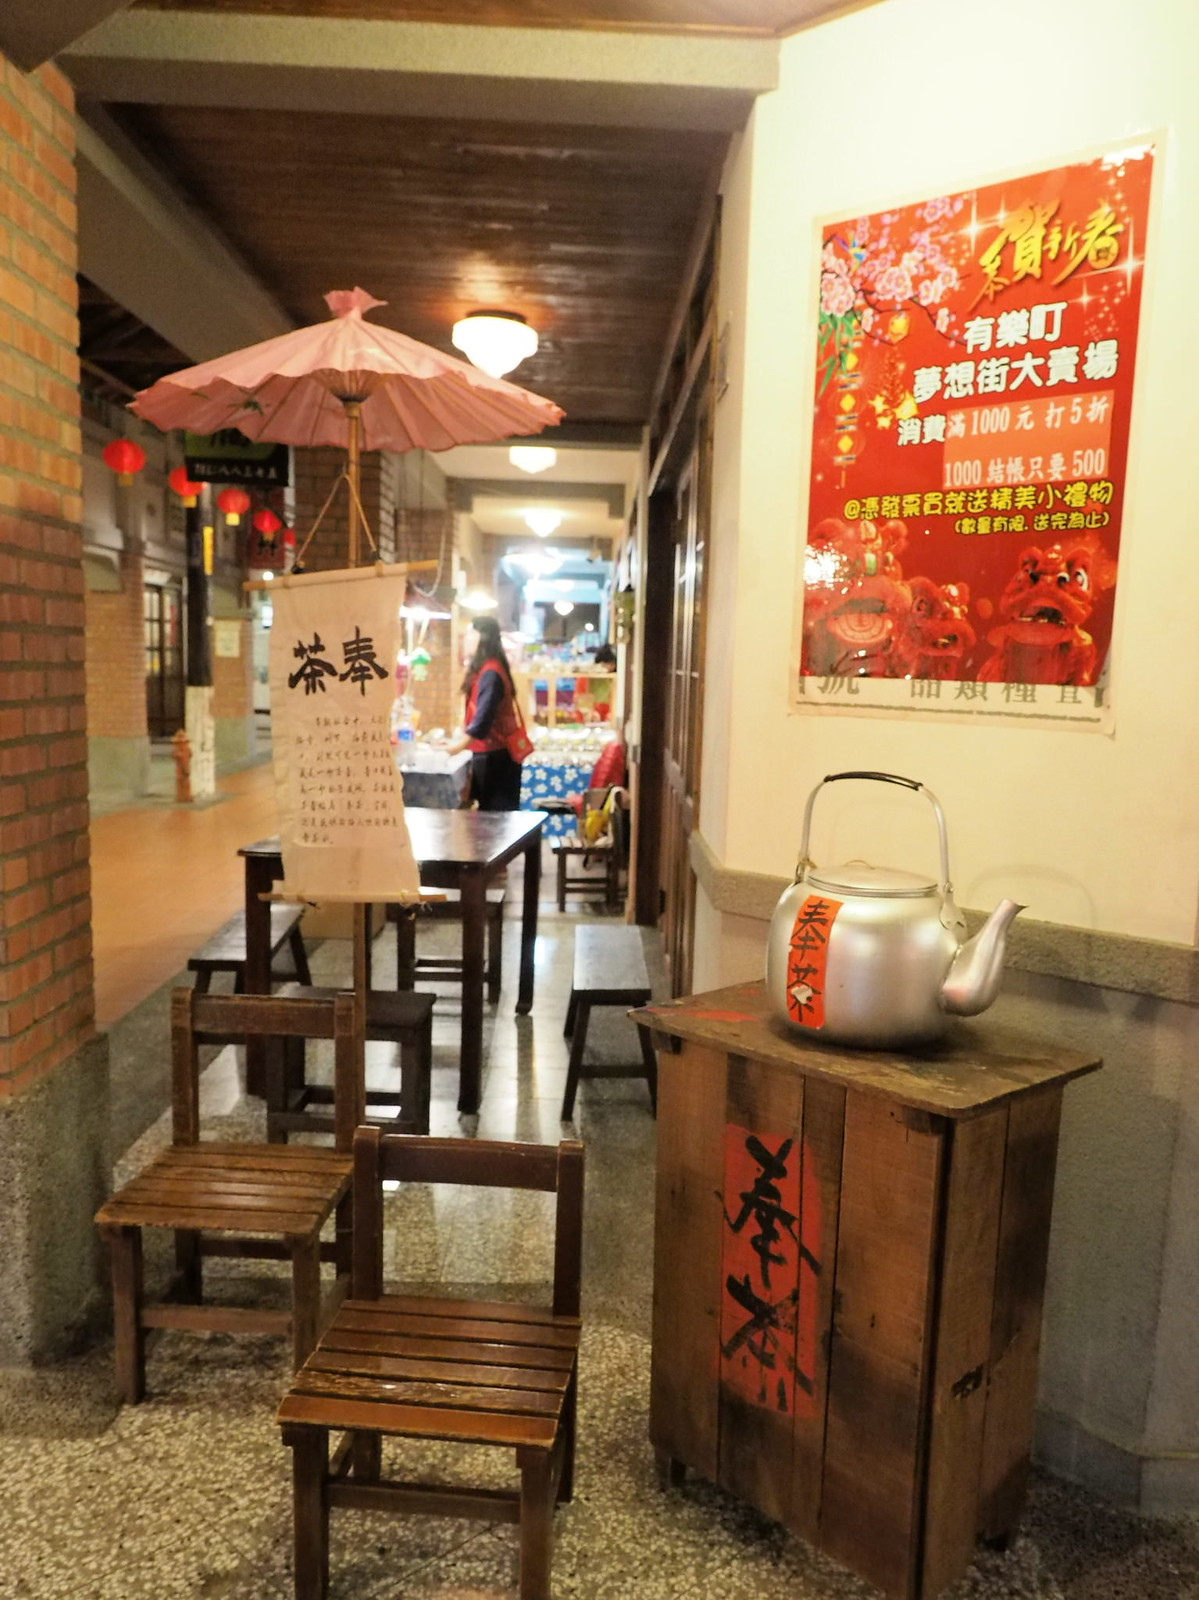 A corner for some cups of Chinese tea at Taiwan Times Village (寶島時代村)